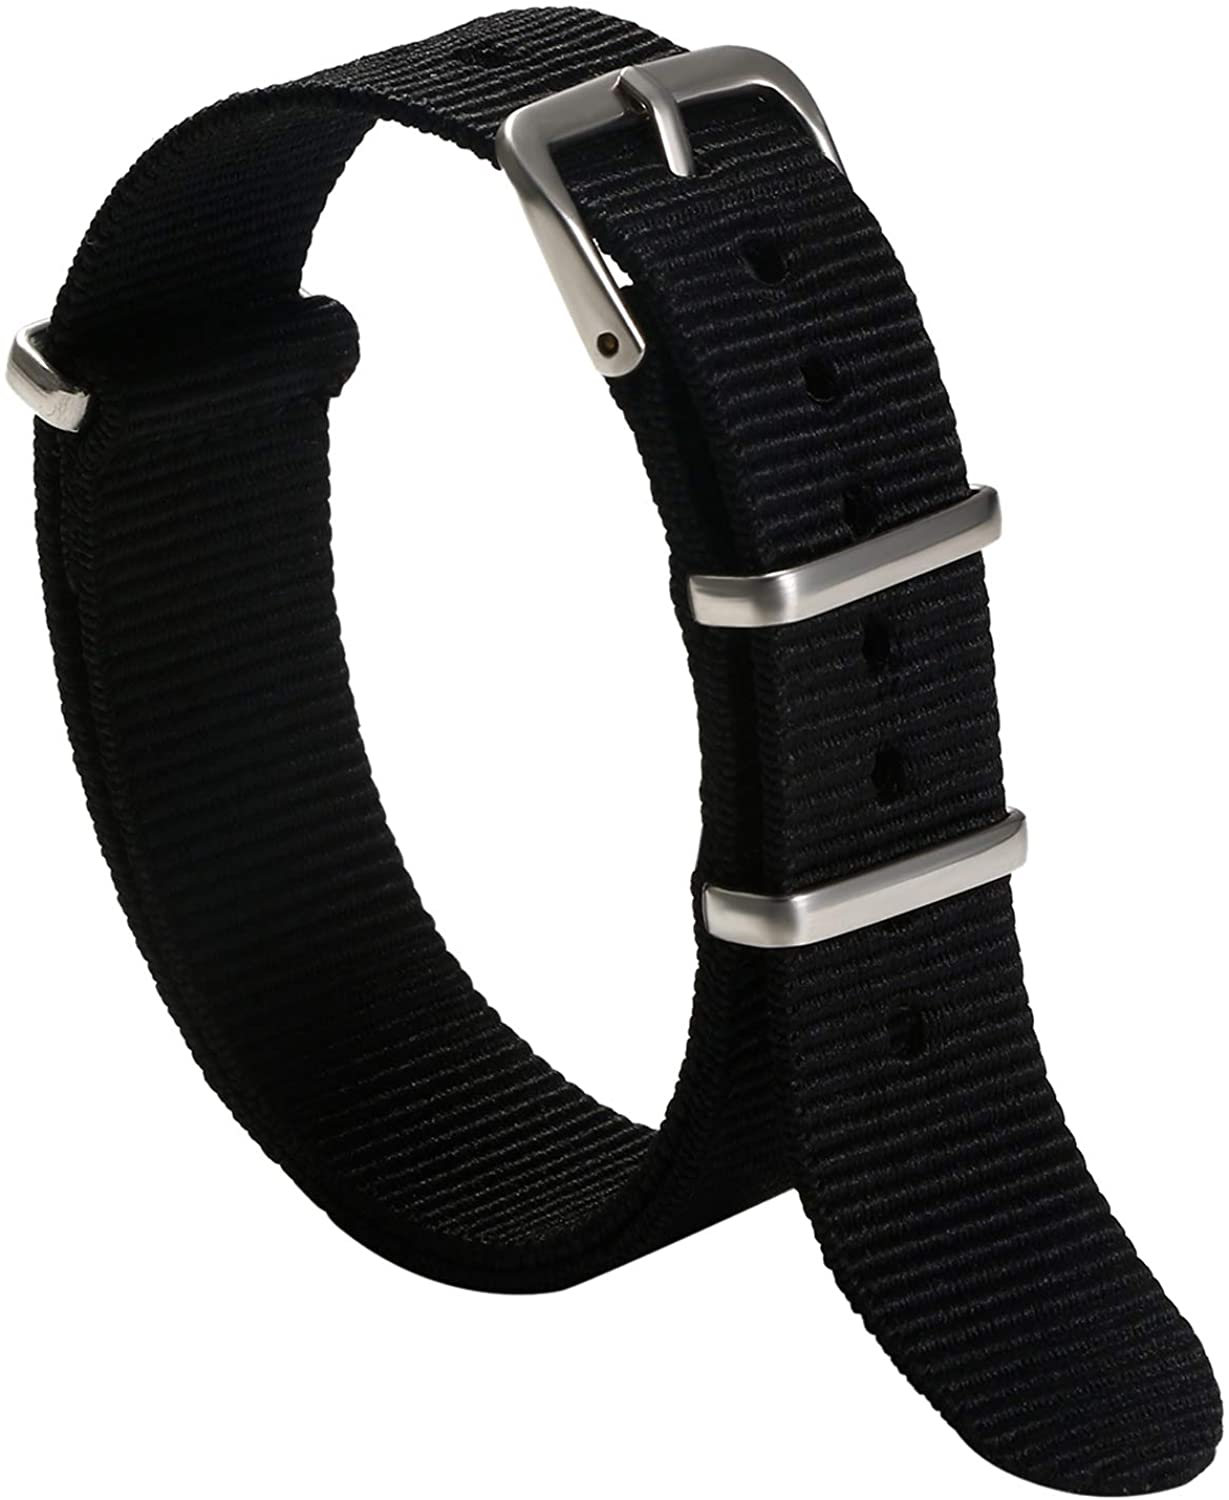 AVANER Watch Strap Nylon Striped Band Replacement Strap with Stainless Steel Buckle for Men Women (18mm 20mm 22mm)